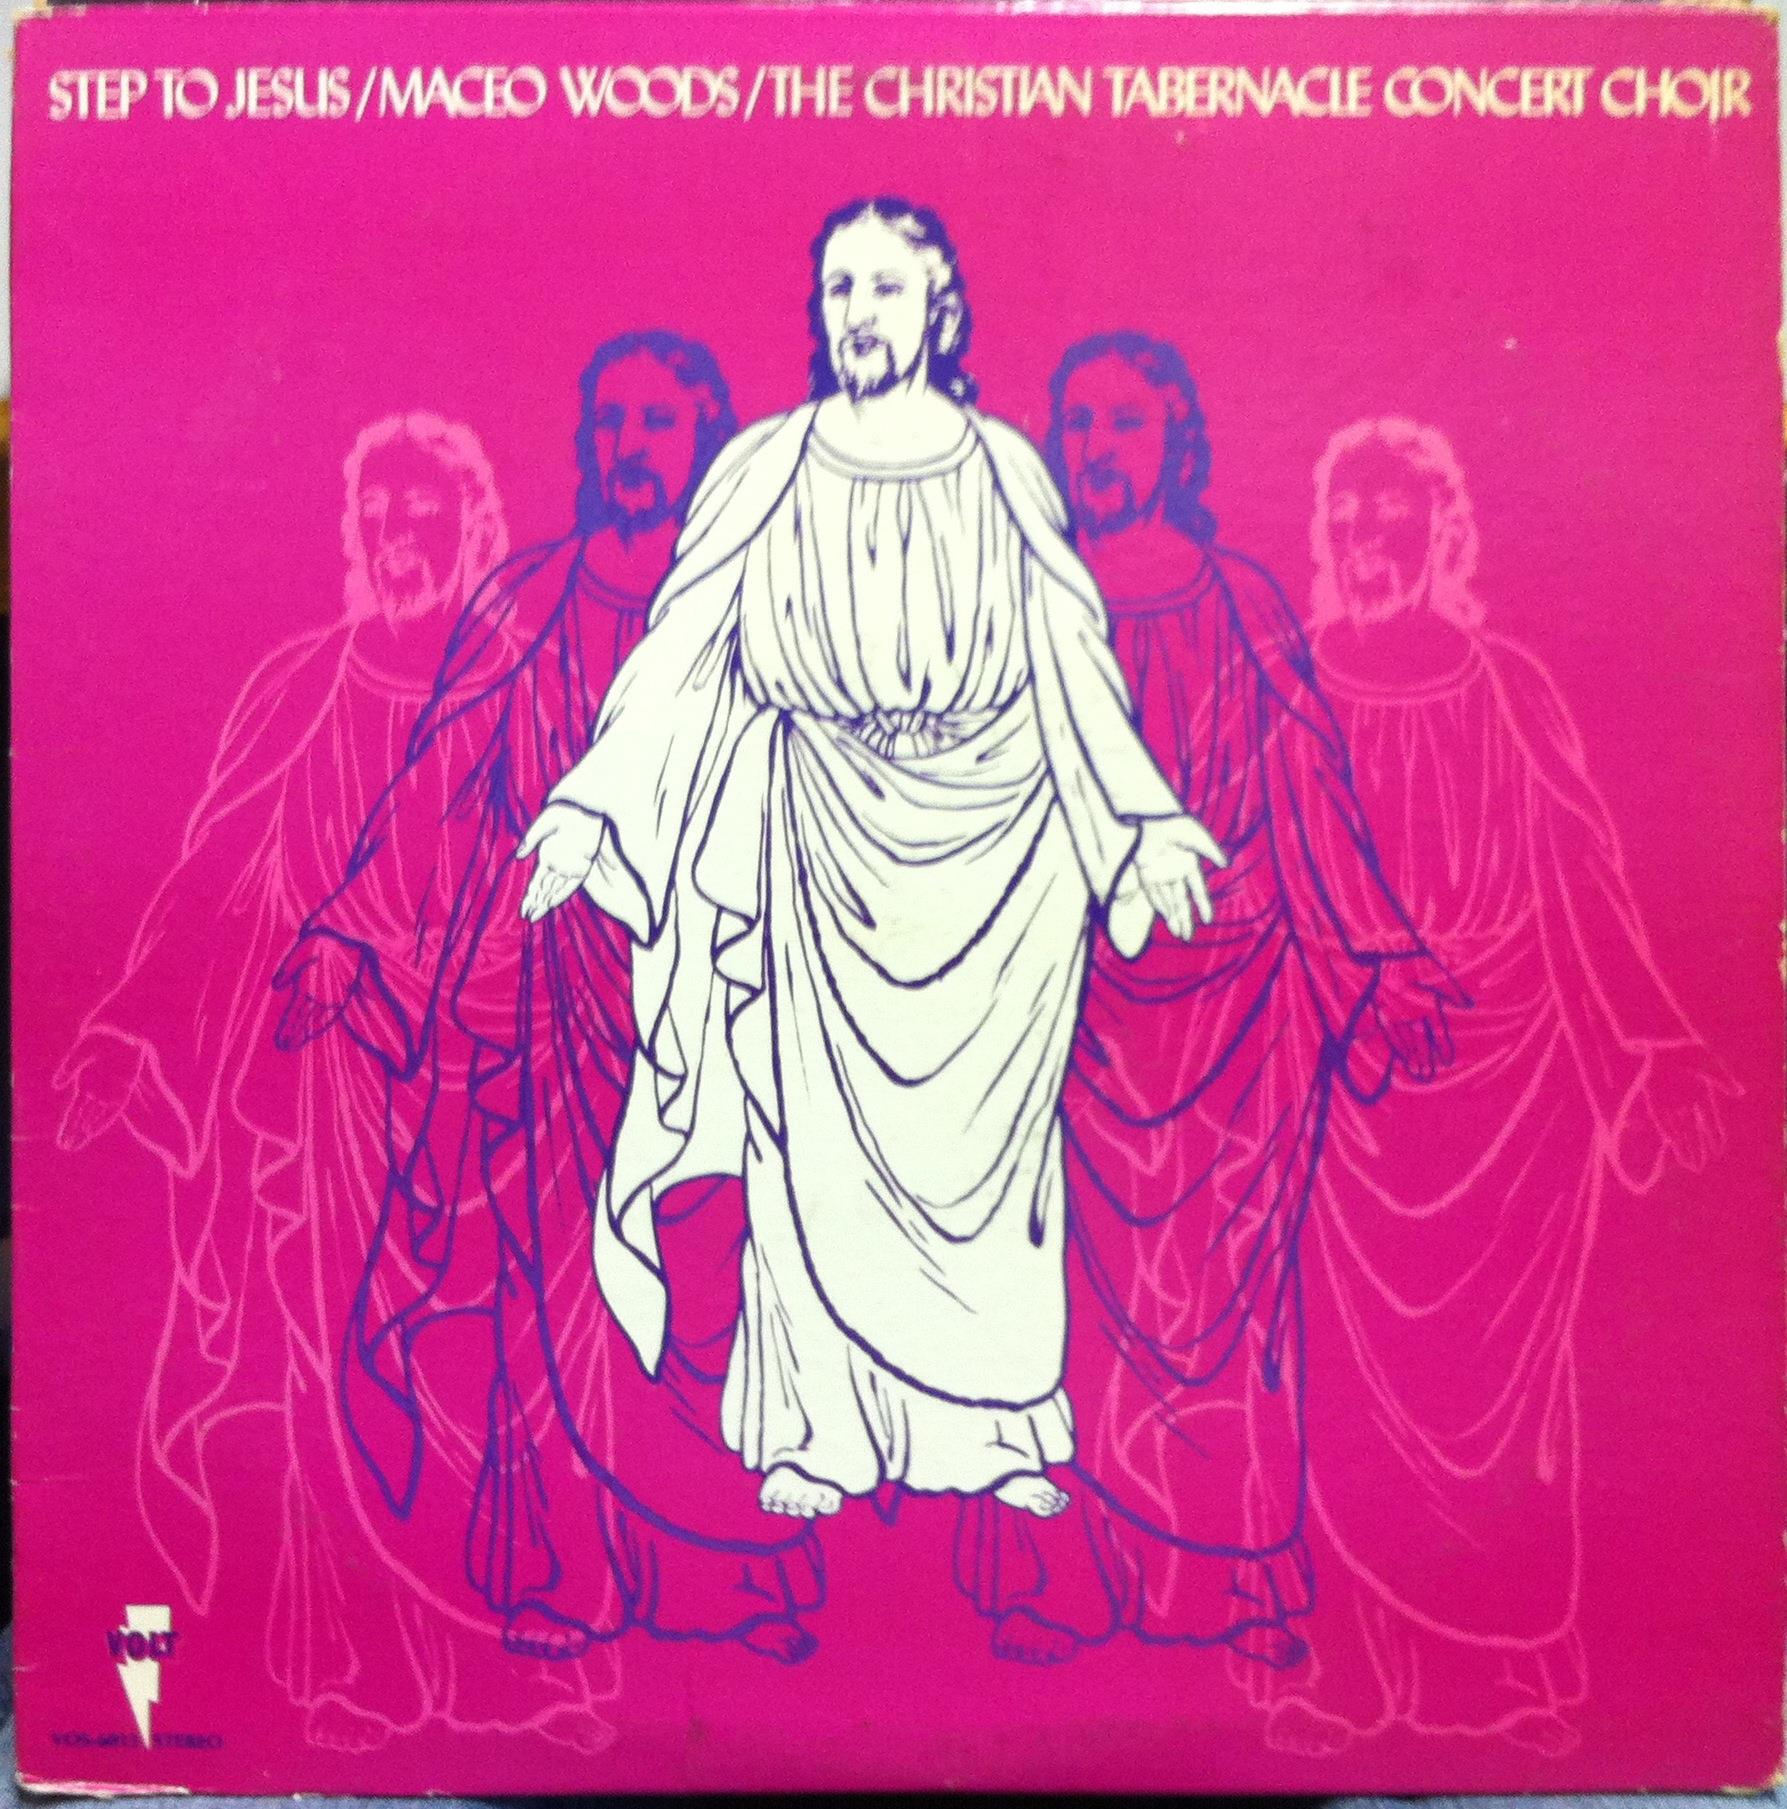 maceo christian singles Step to jesus lp related searches rev maceo woods & christian tabernacle the following grading conditions apply to the vinyl component of an album or single.